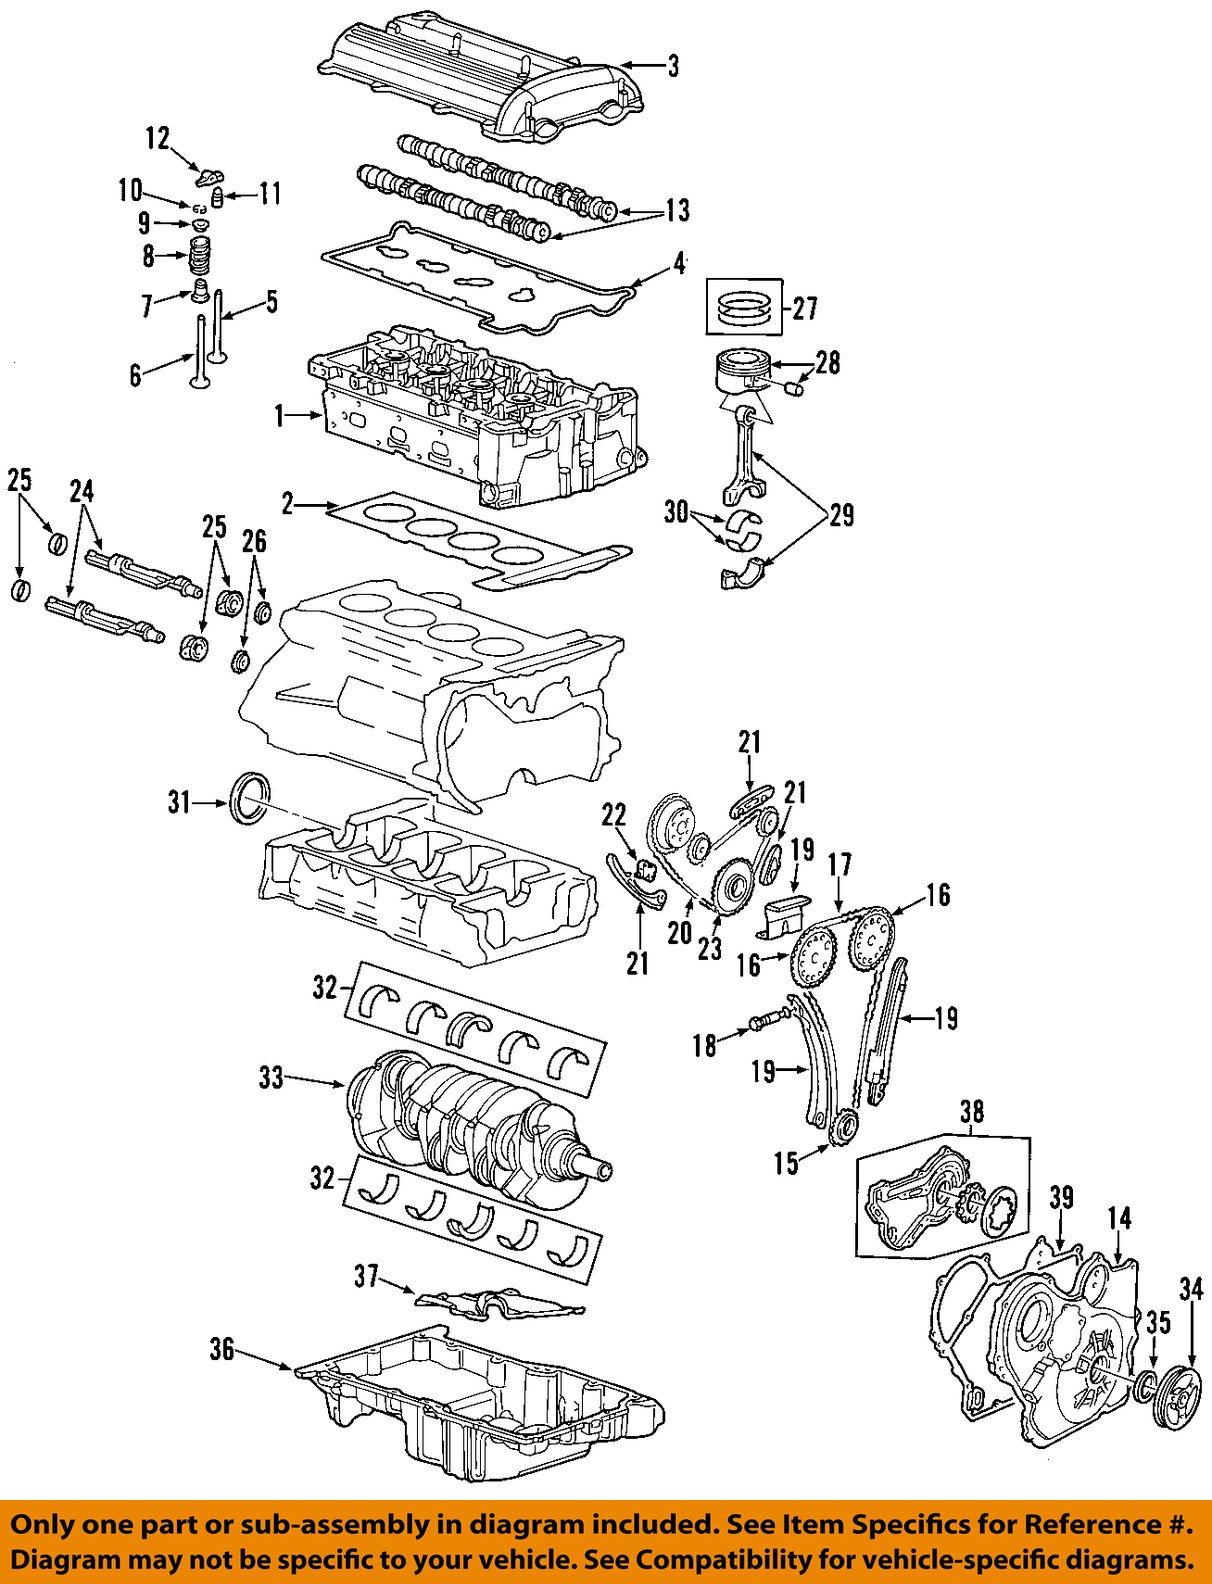 hight resolution of 2003 saturn 2 2 engine diagram wiring diagrams rh 60 treatchildtrauma de 2002 saturn sl1 engine